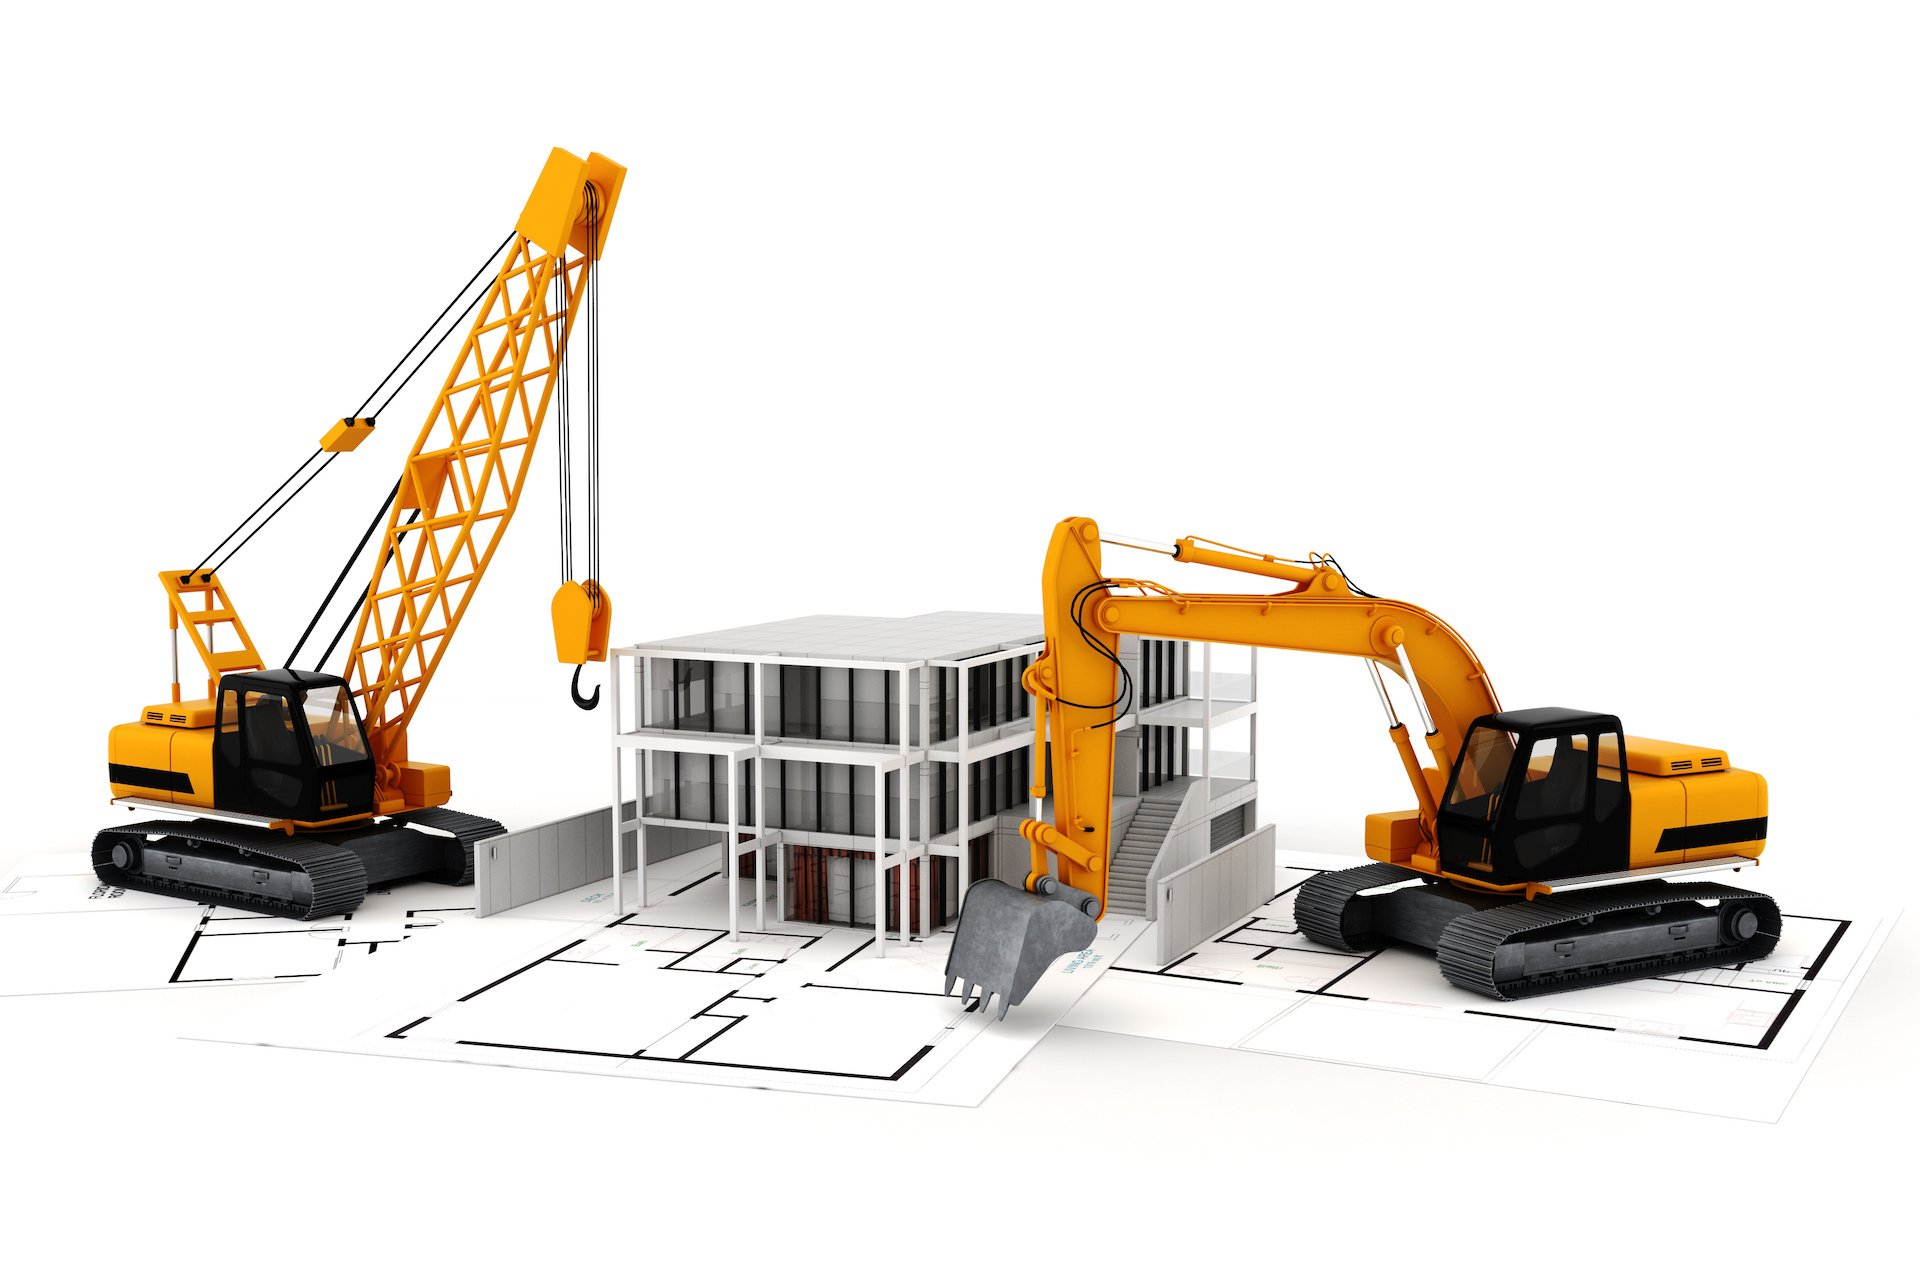 Sustainable Construction with 3D-Printed Building Blocks